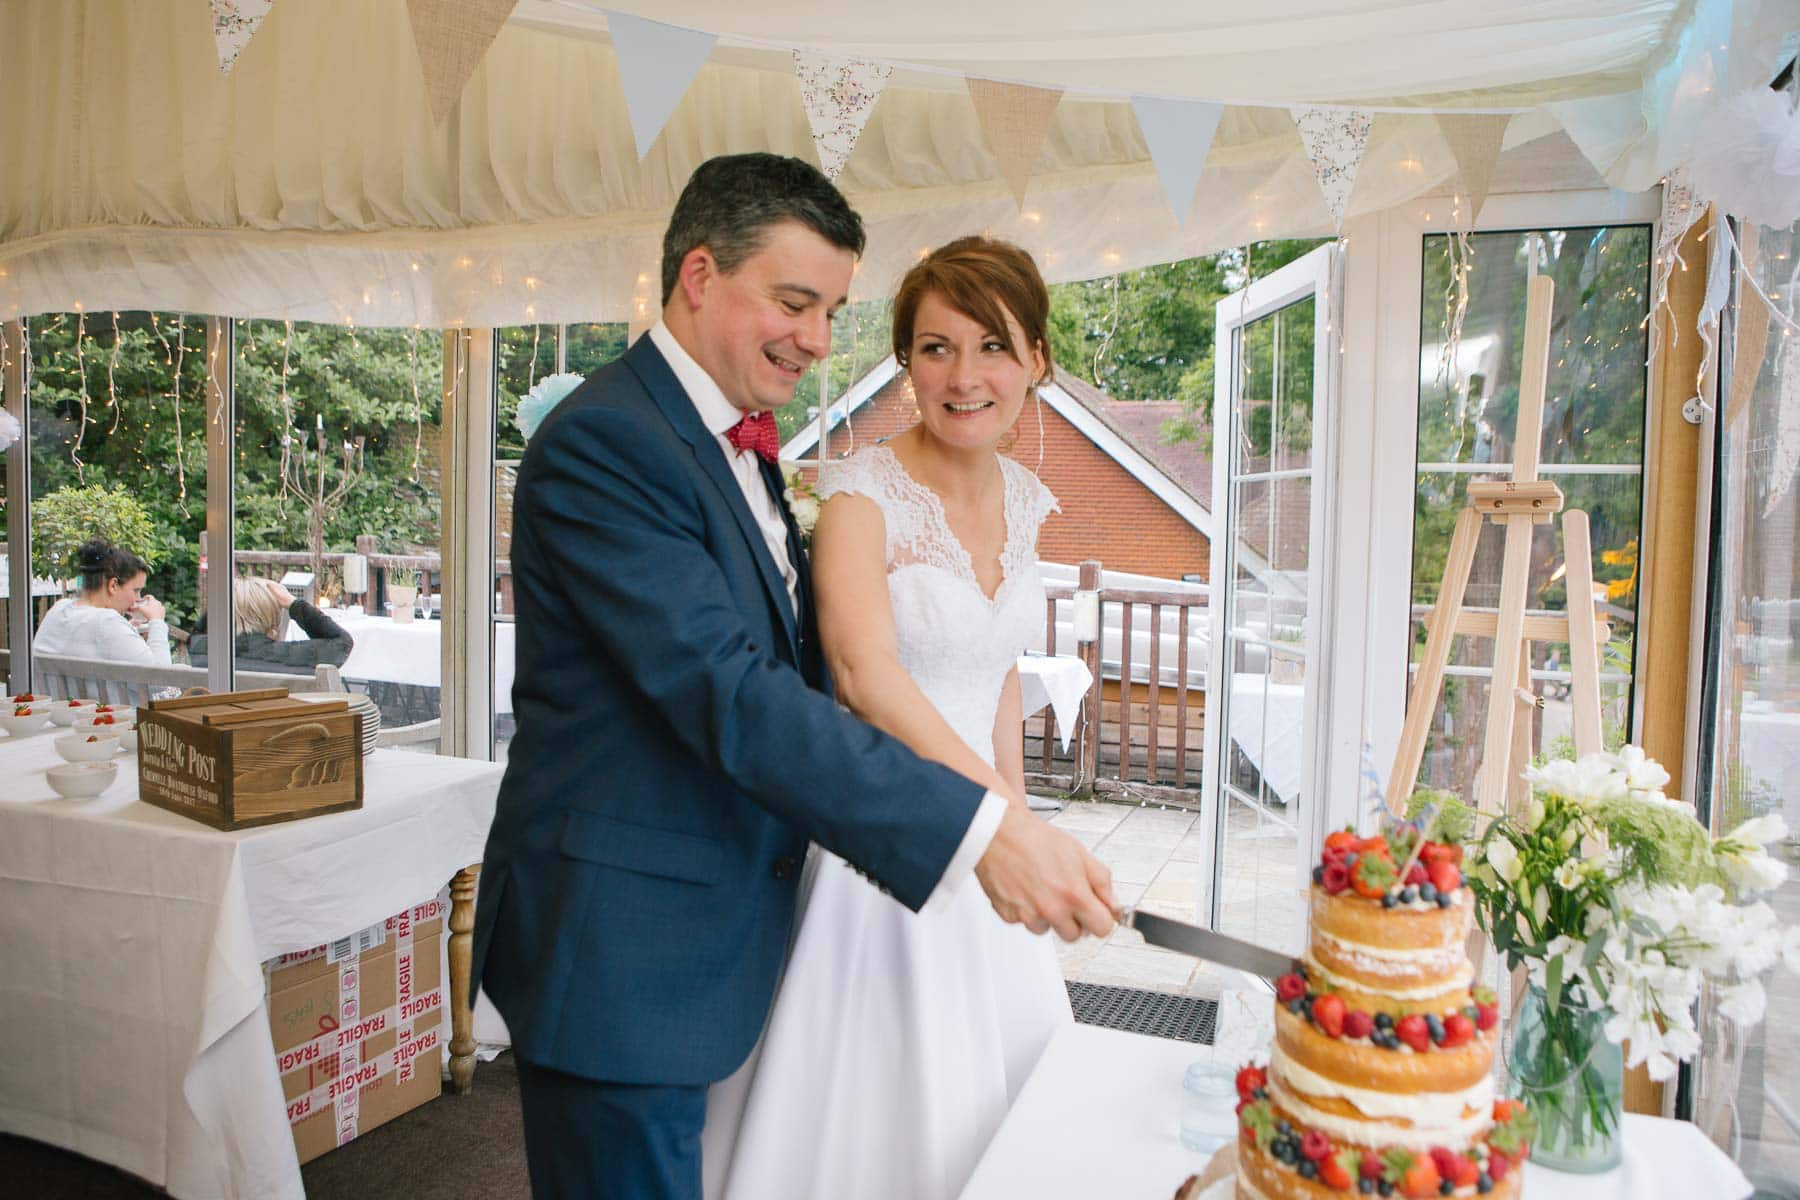 Bride and groom cut their naked wedding cake